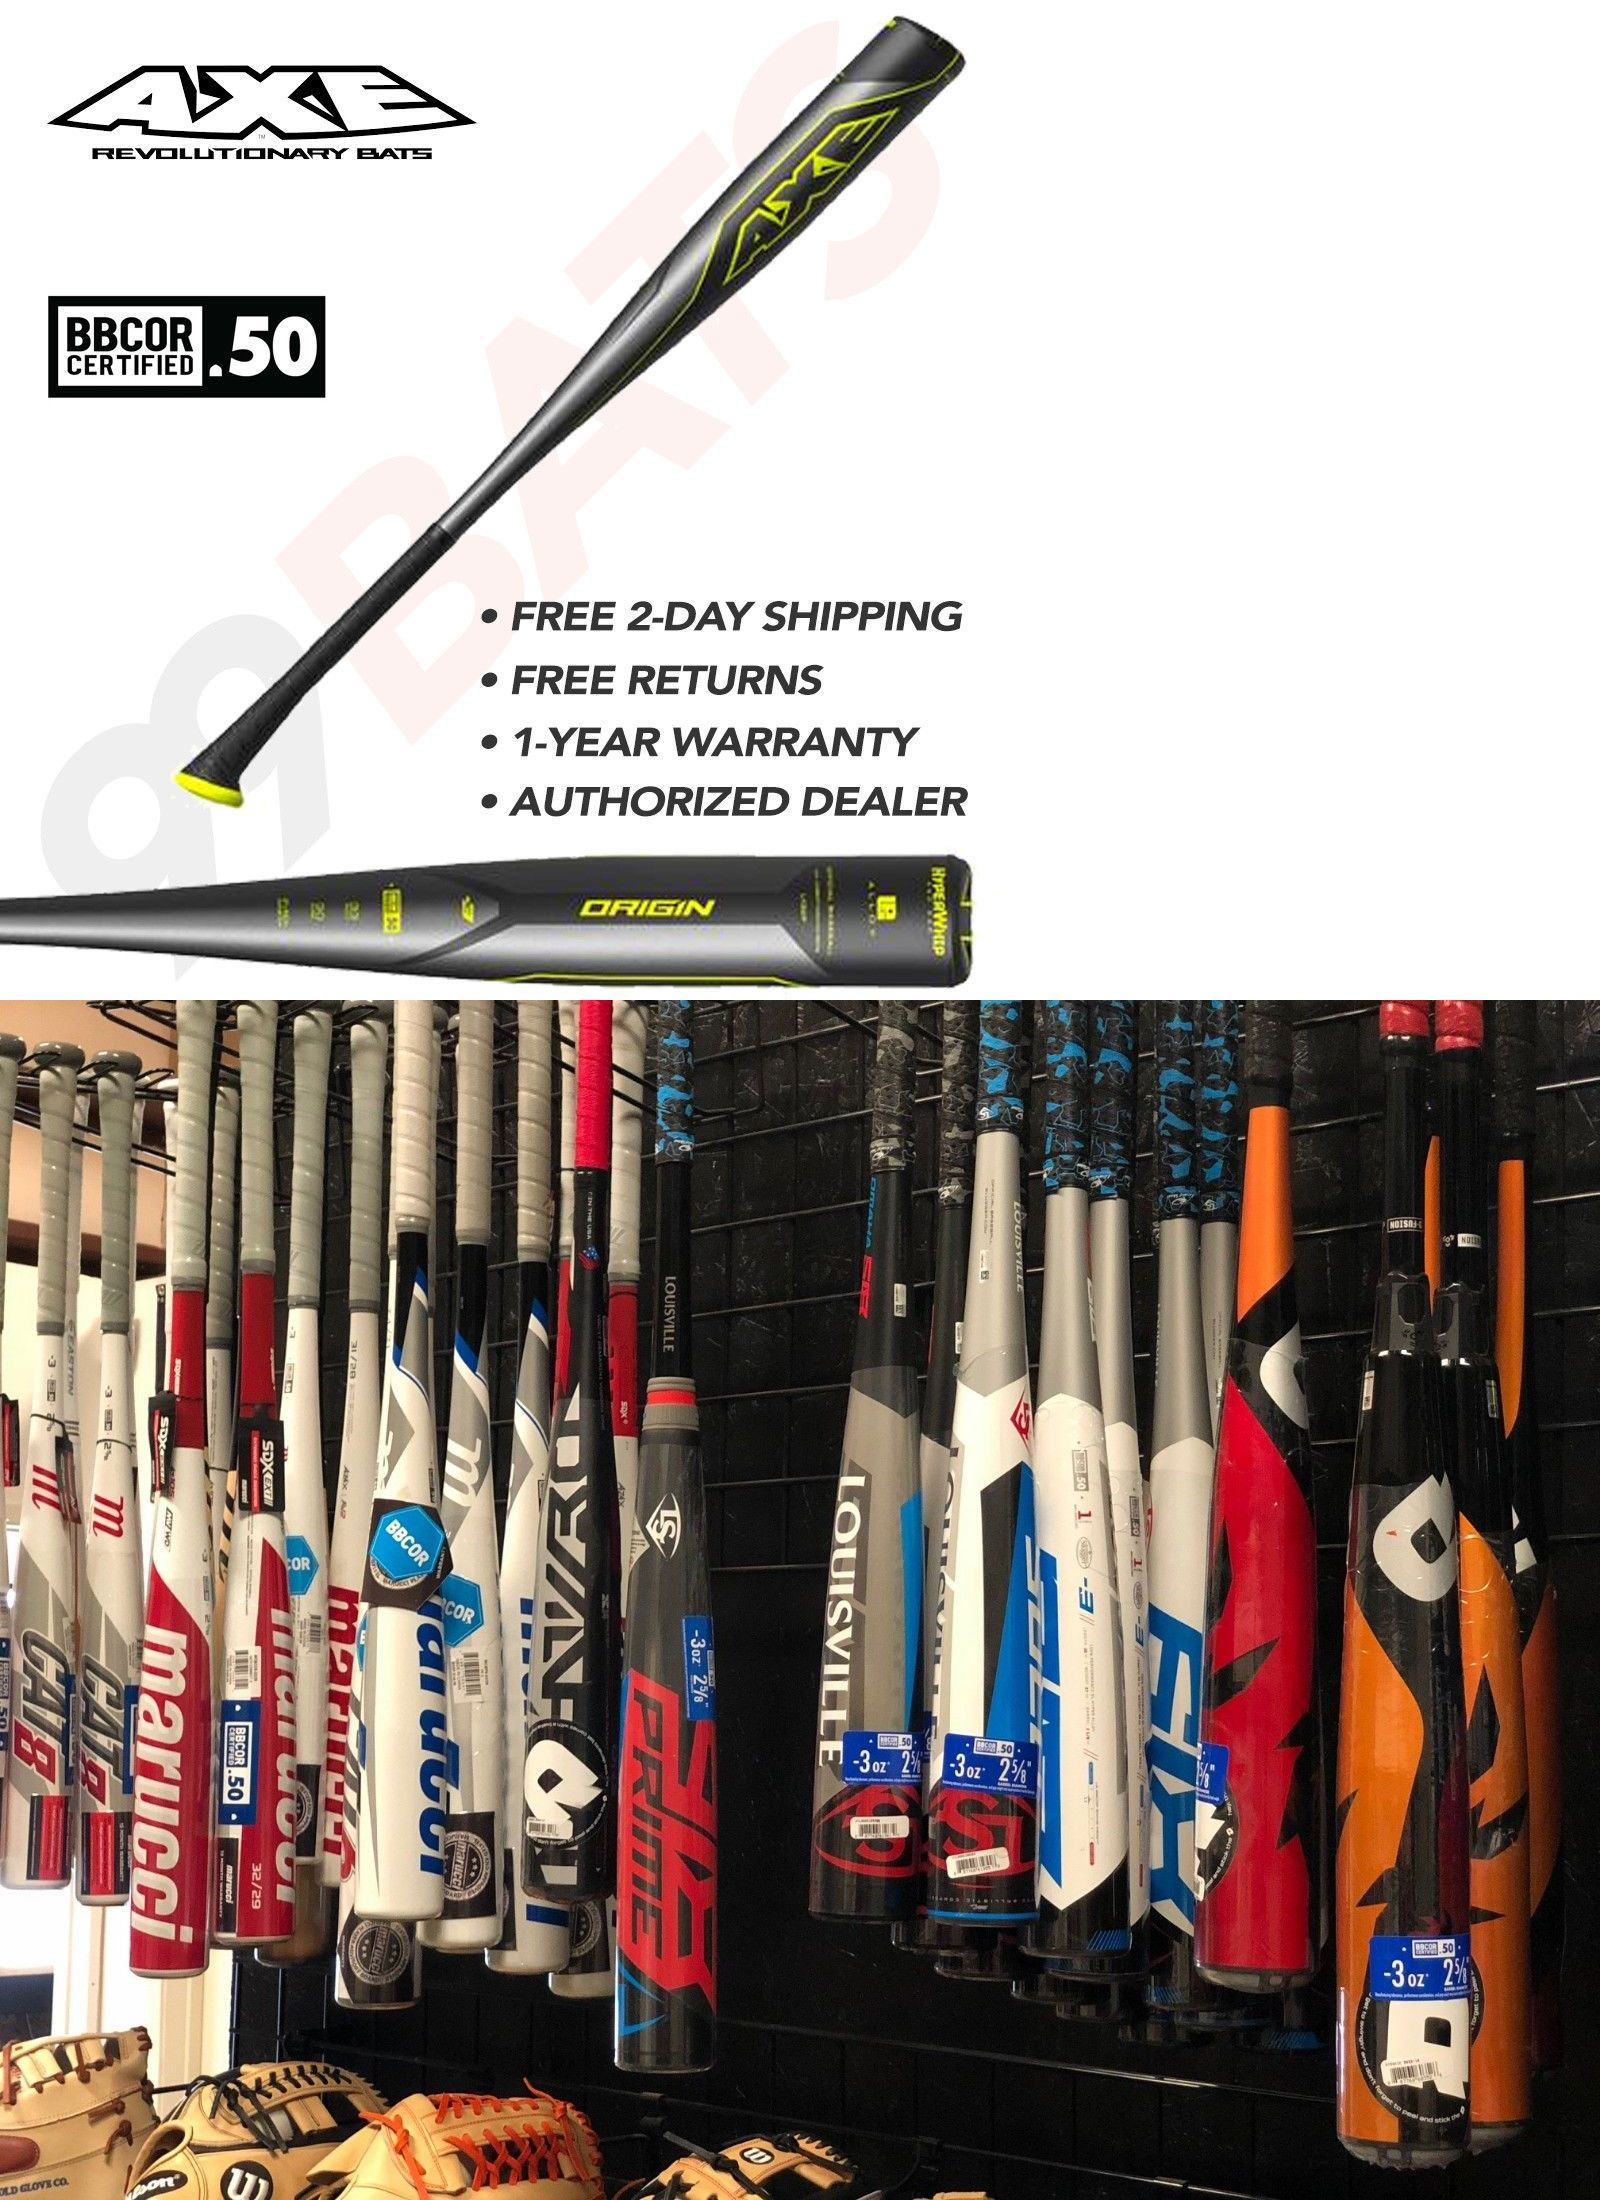 Baseball-Youth 73897: Axe Bat 2018 Origin Bbcor (-3